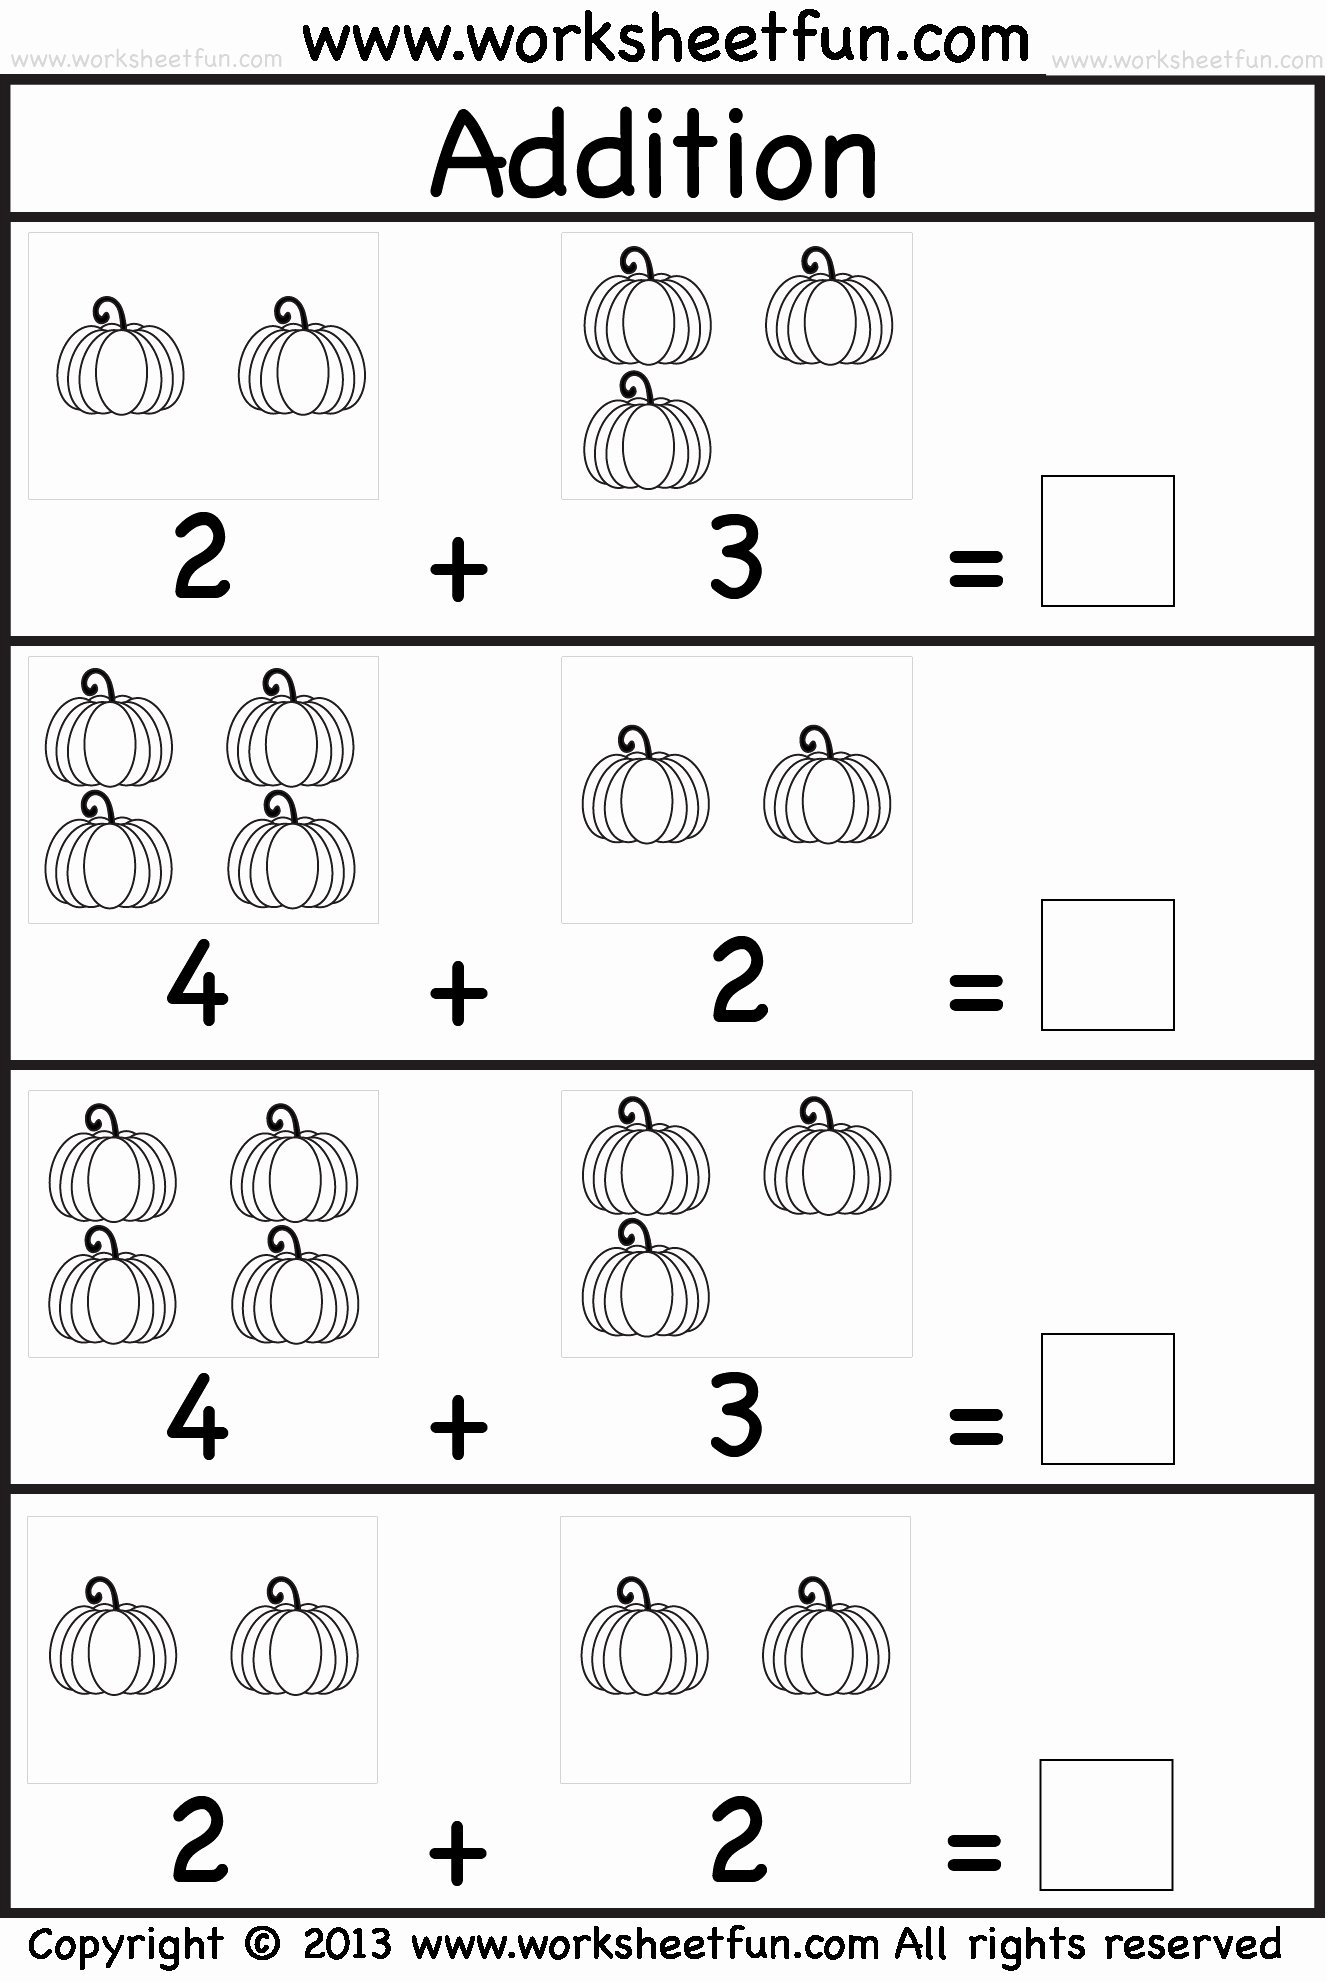 Worksheets for Preschoolers Math Lovely Kindergarten Math Worksheets for Printable Preschool